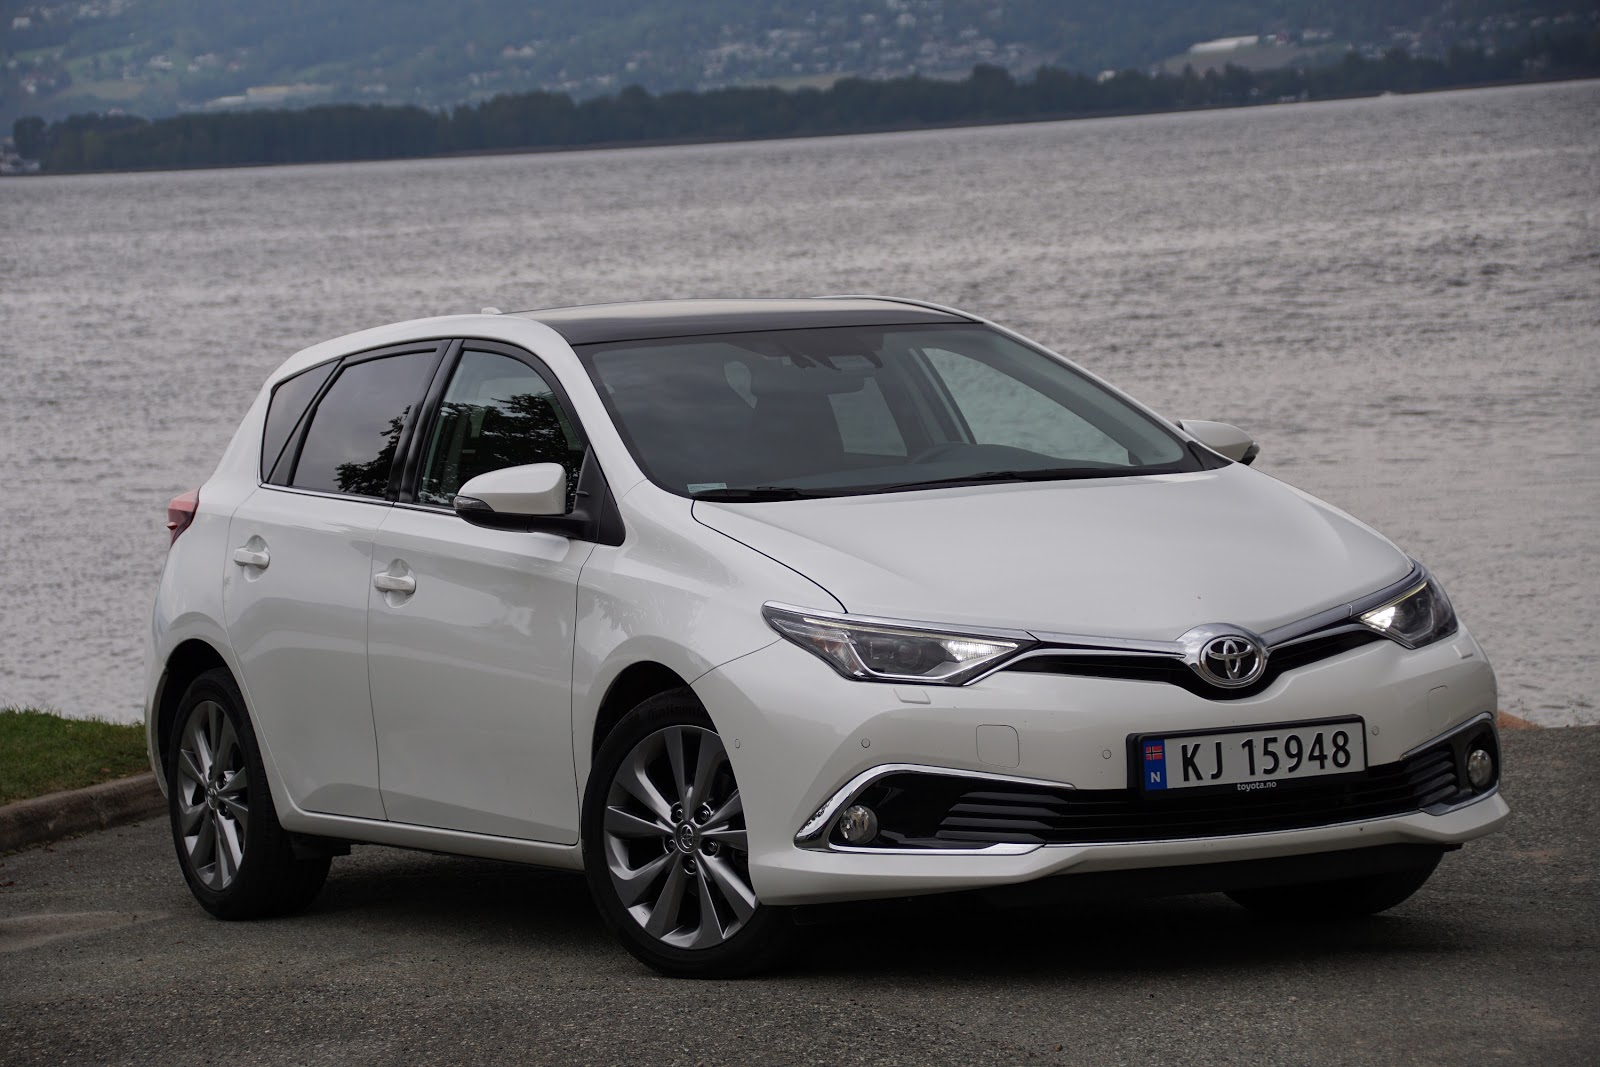 test toyota auris 1 2t executive bil og motorbloggen. Black Bedroom Furniture Sets. Home Design Ideas